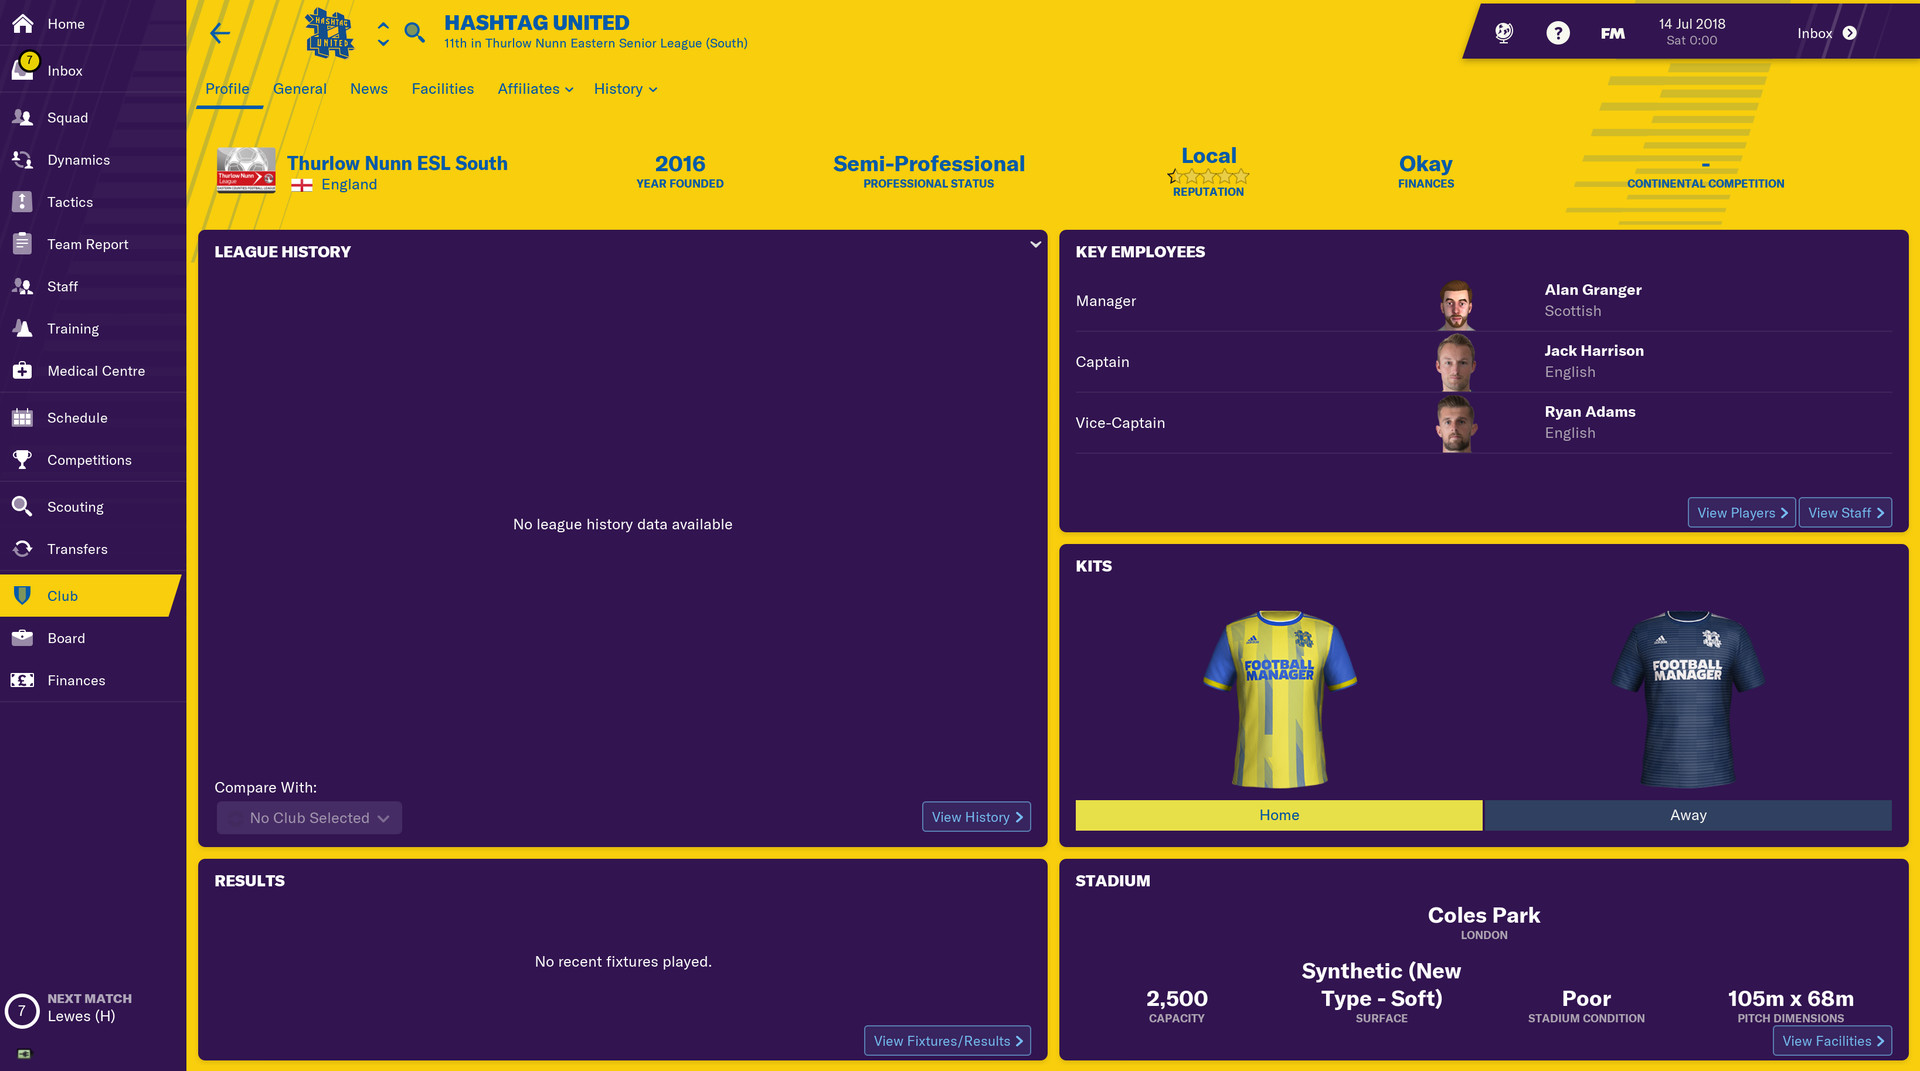 Football Manager 2019: The Hashtag United Challenge on Steam